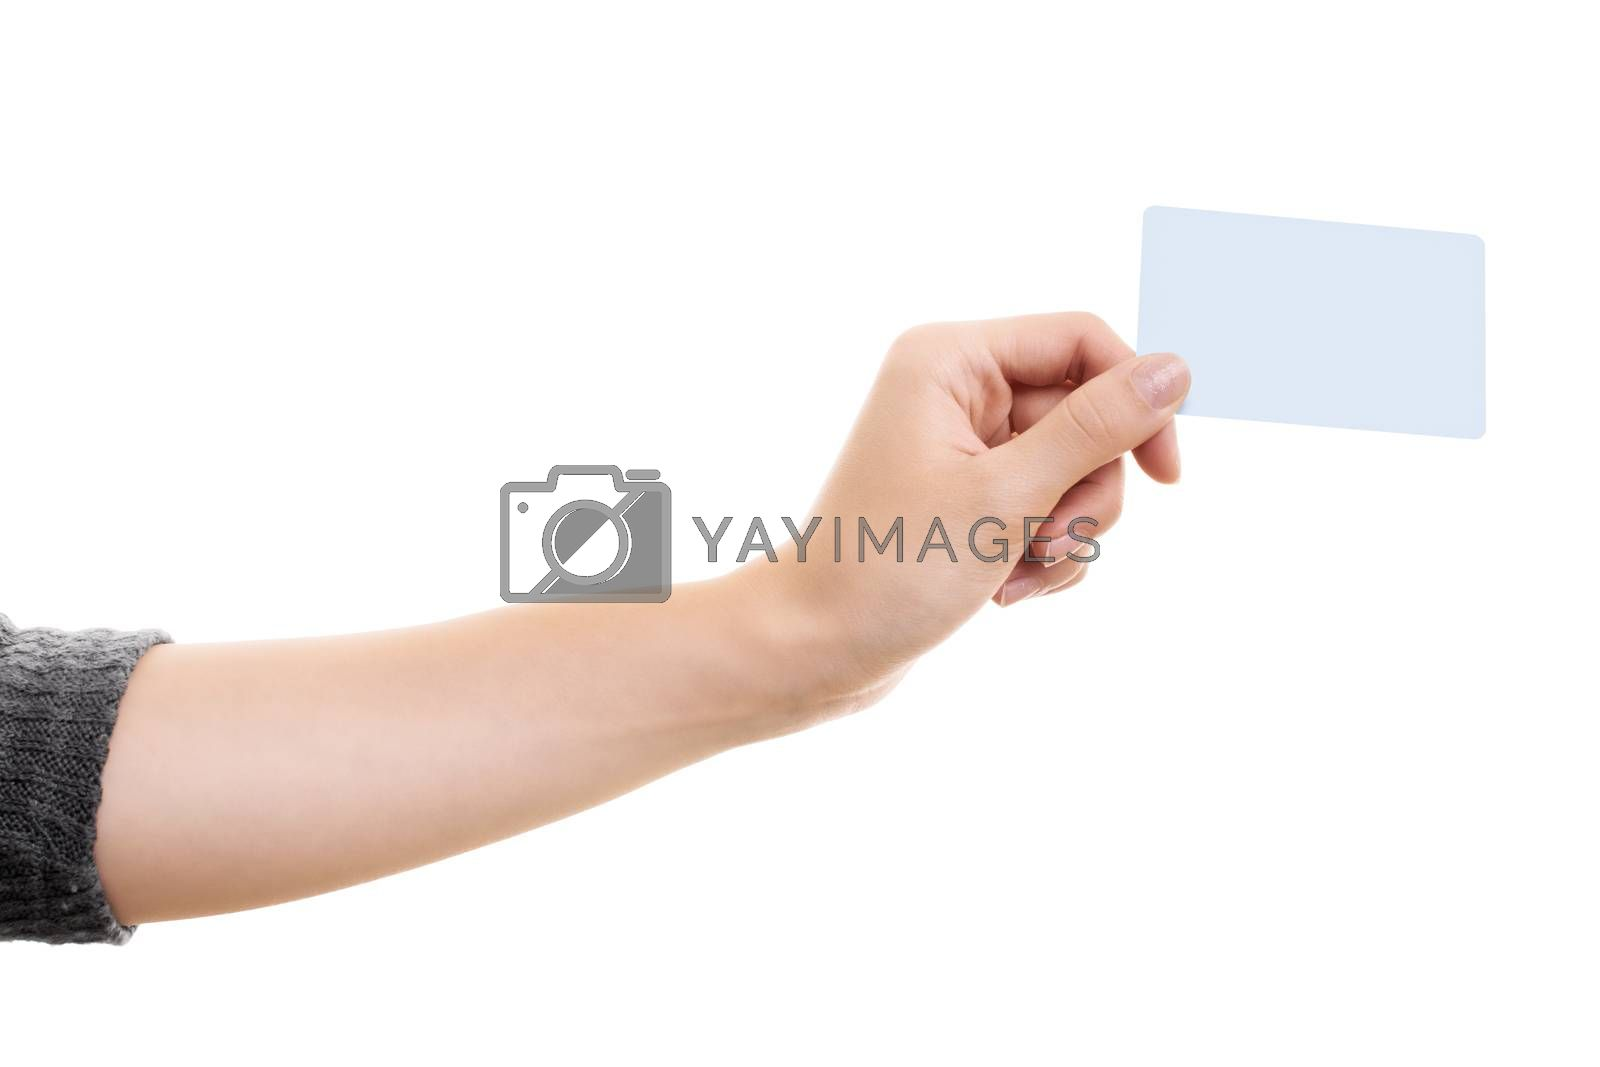 Female hand holding a blank white card mock up, isolated on white background. Business communication and advertising concept. Hand holding a plain call-card mock up template.